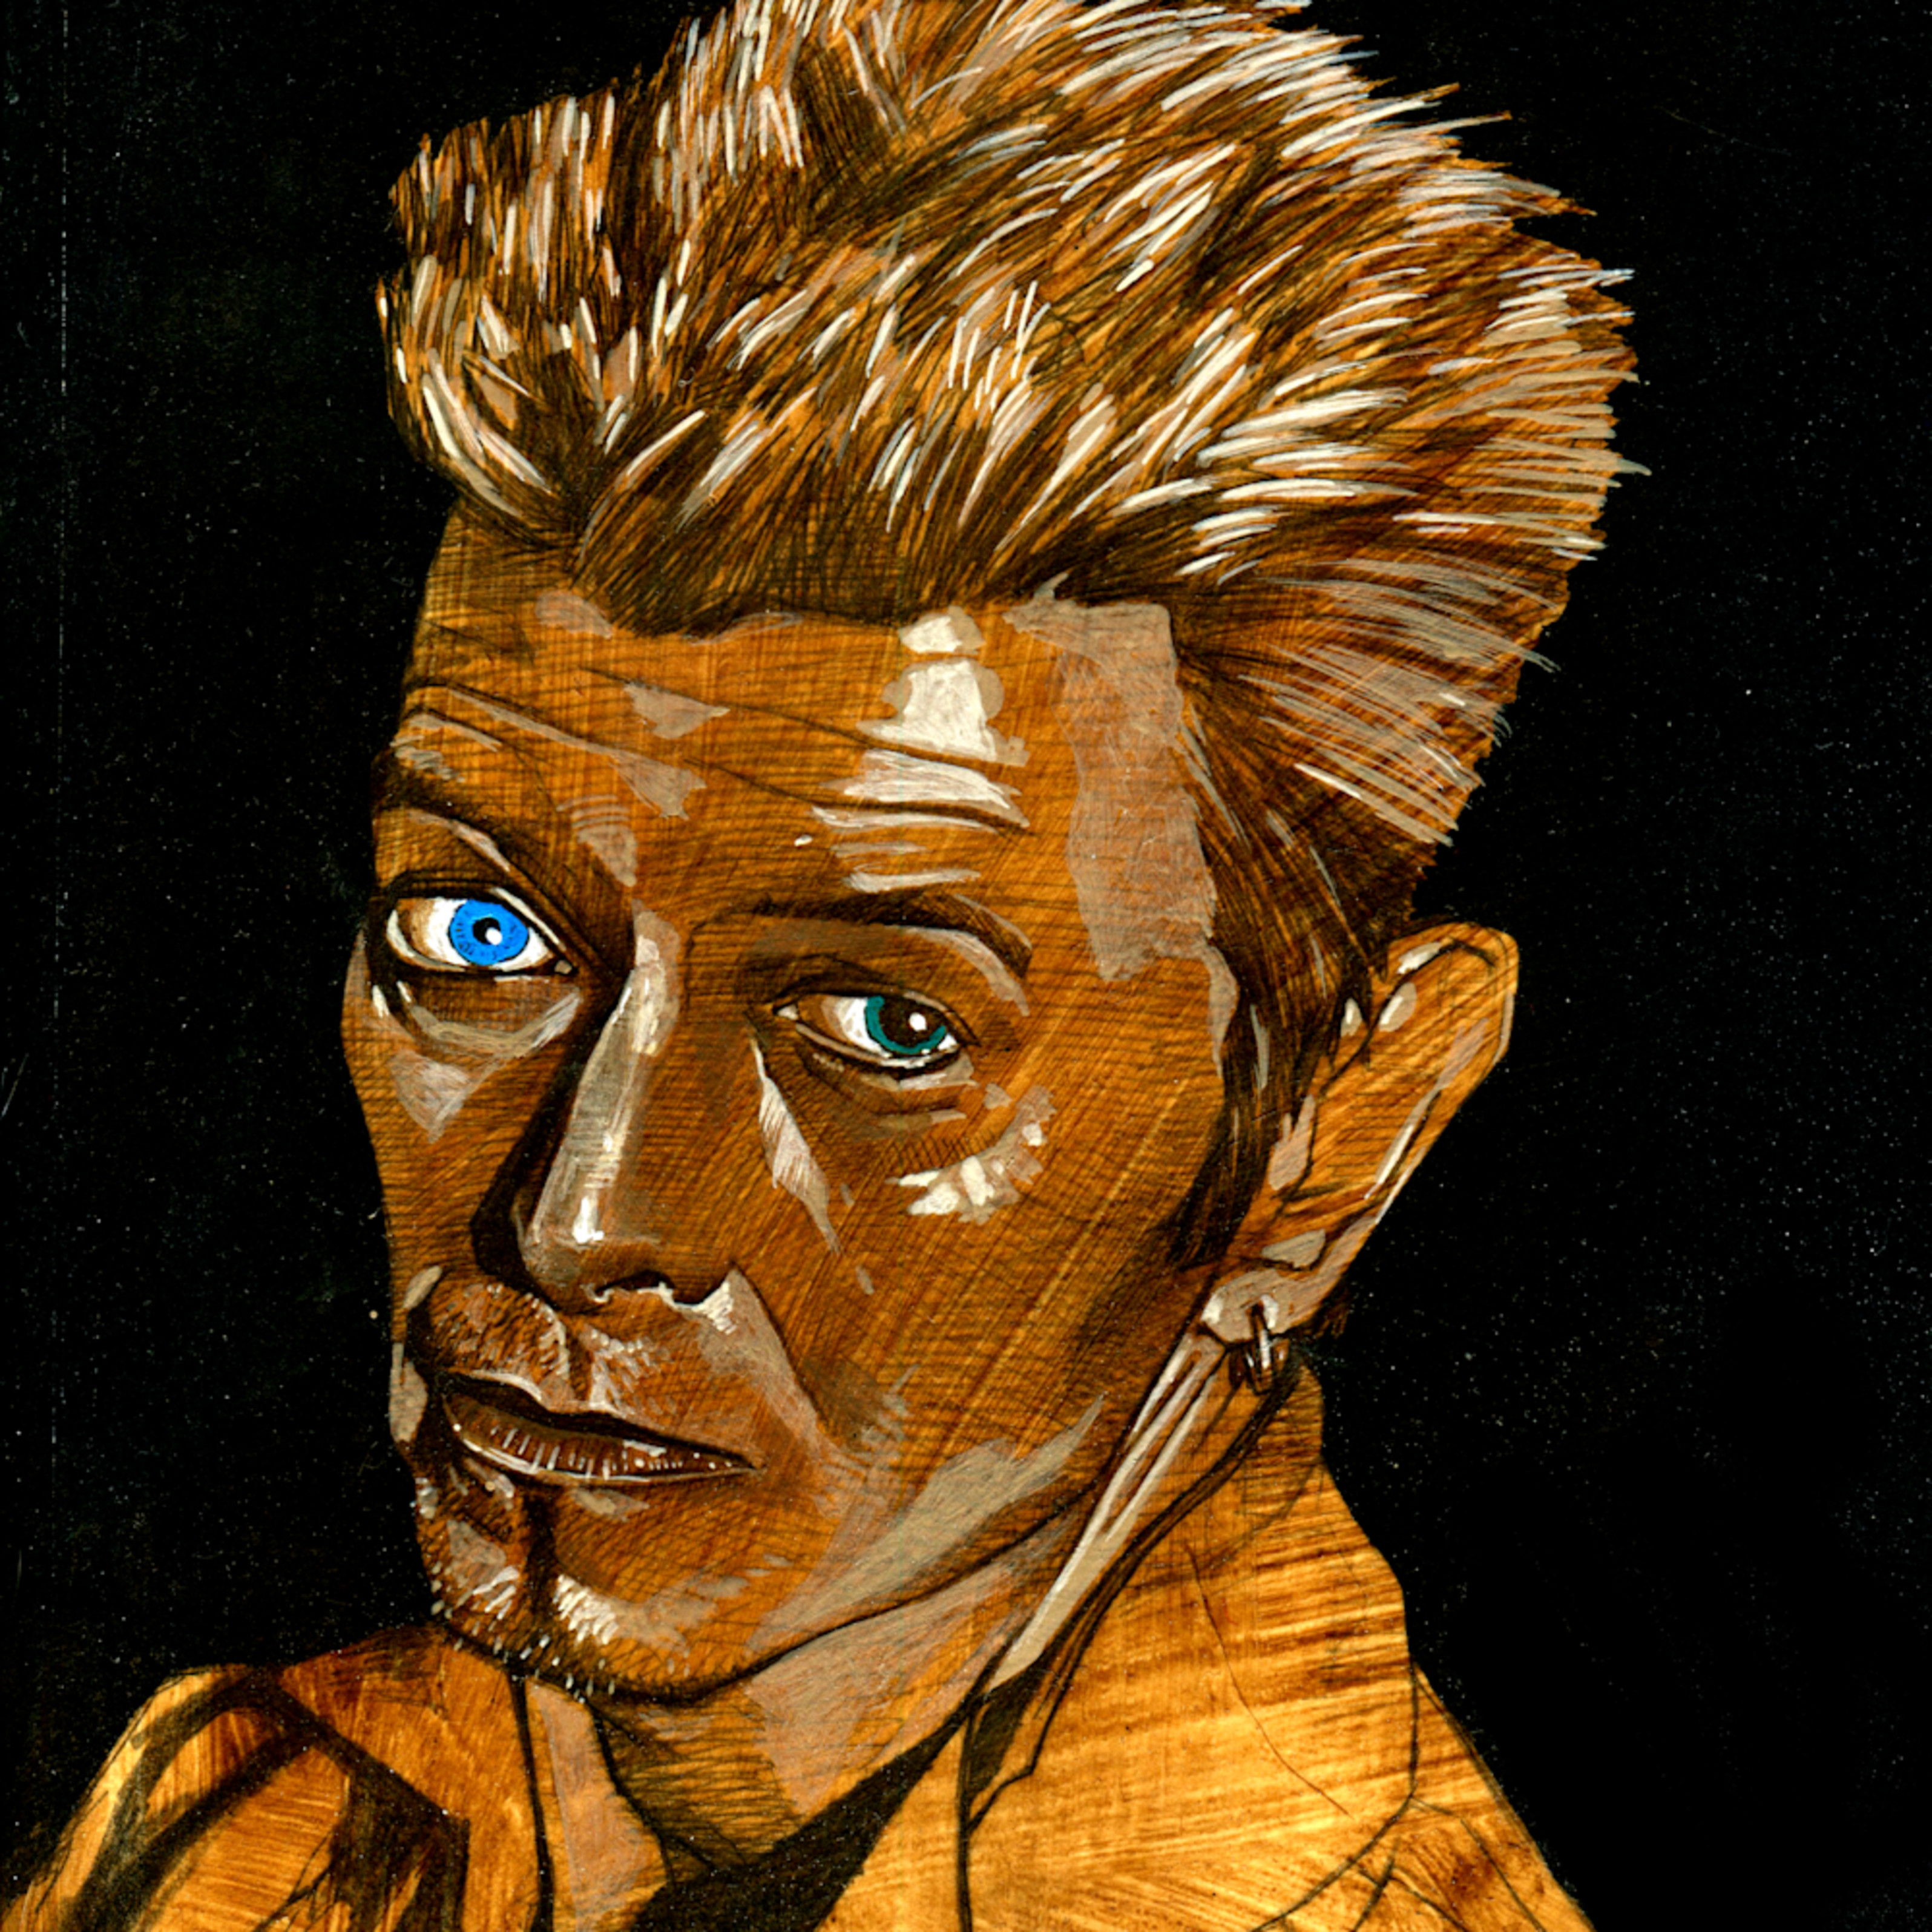 Bowie earthling01 kfjzse